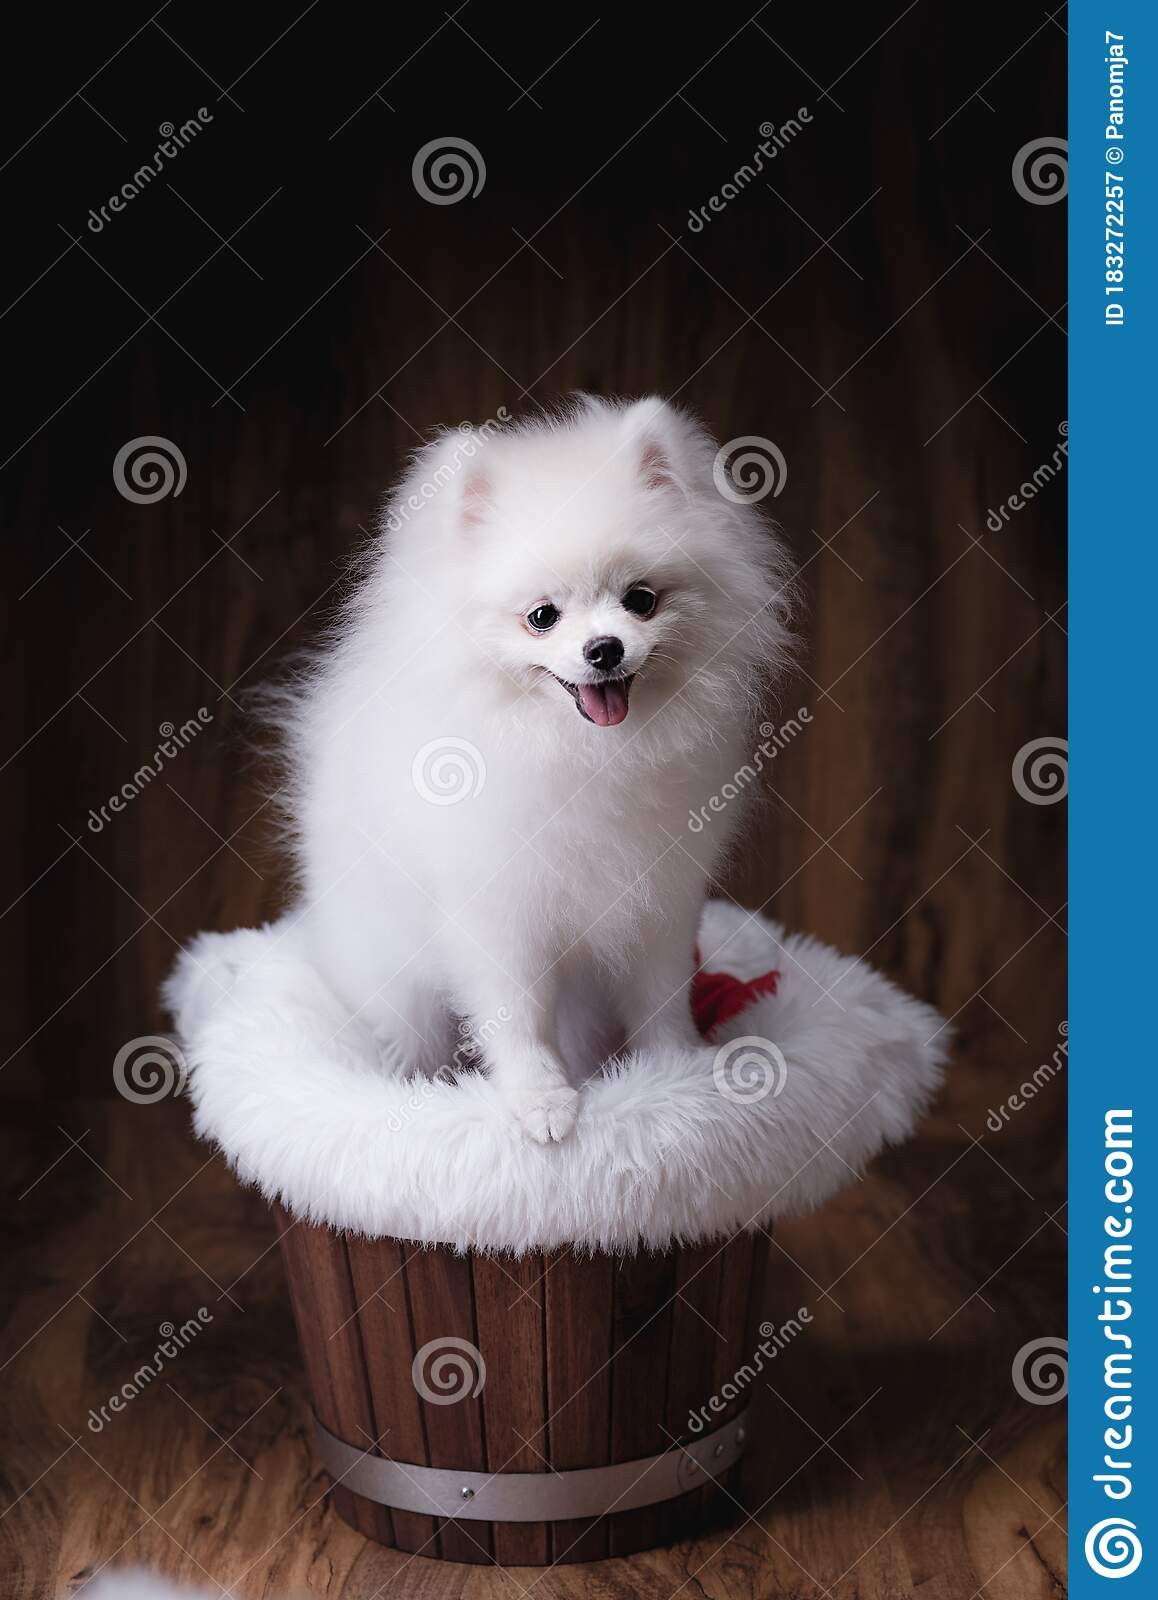 Pomeranian Lion : pomeranian, Pomeranian, Photos, Royalty-Free, Stock, Dreamstime